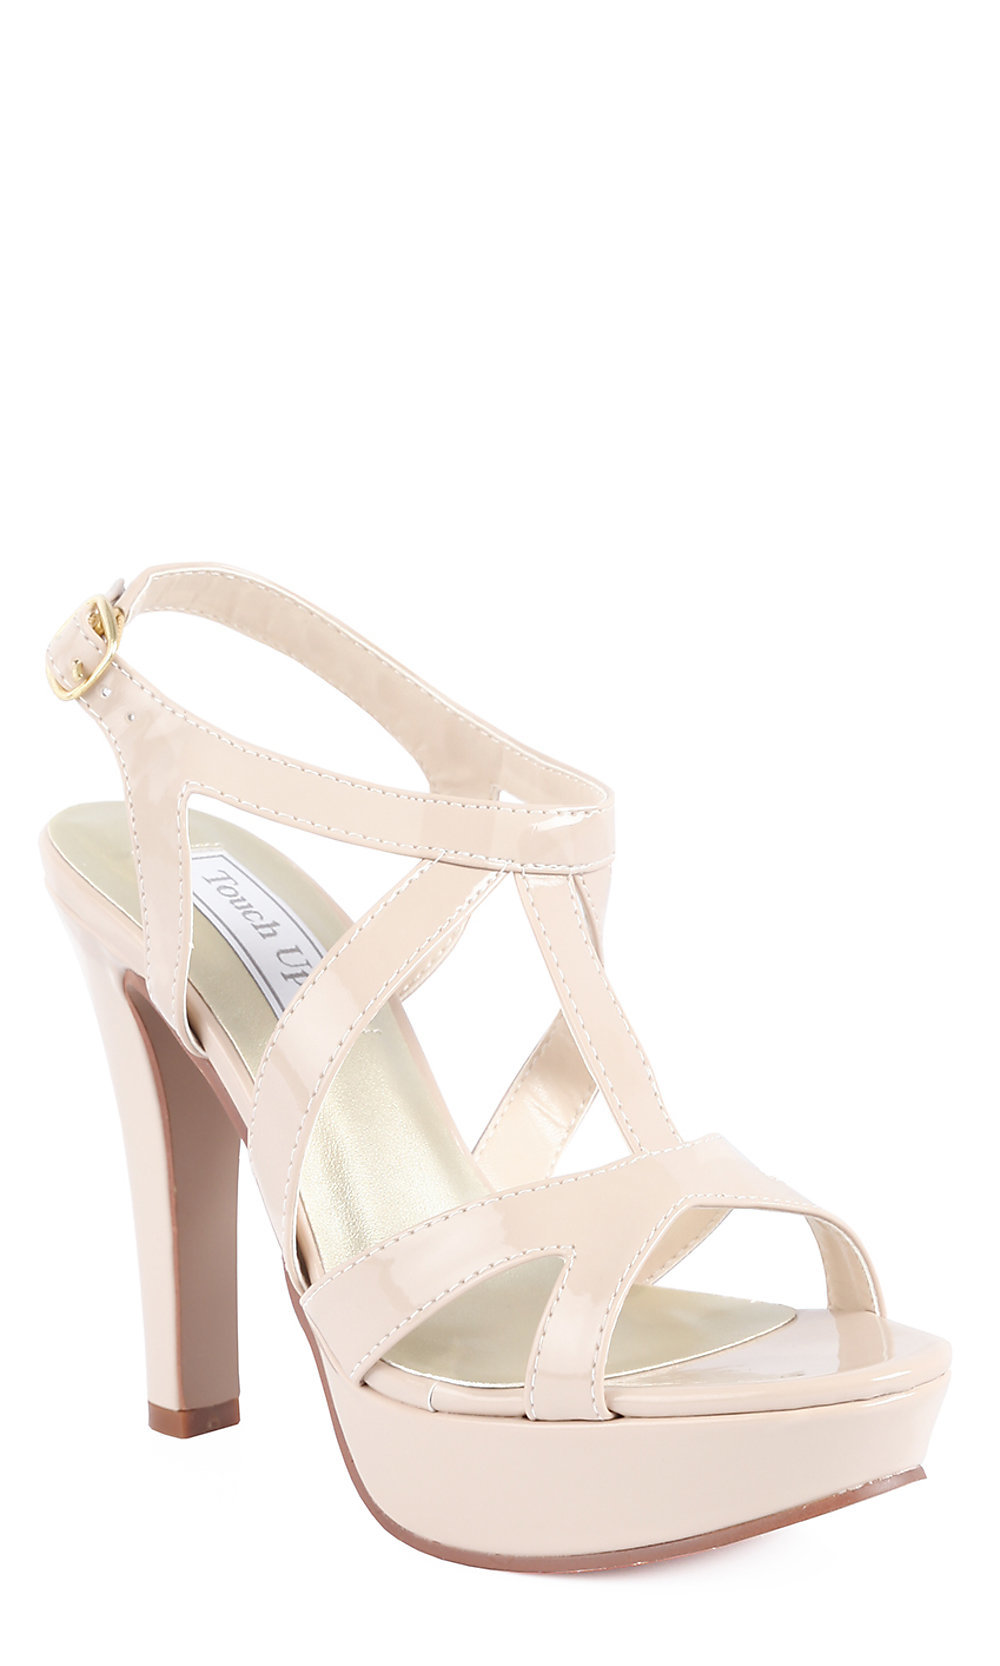 Prom Shoes To Go With White Dress